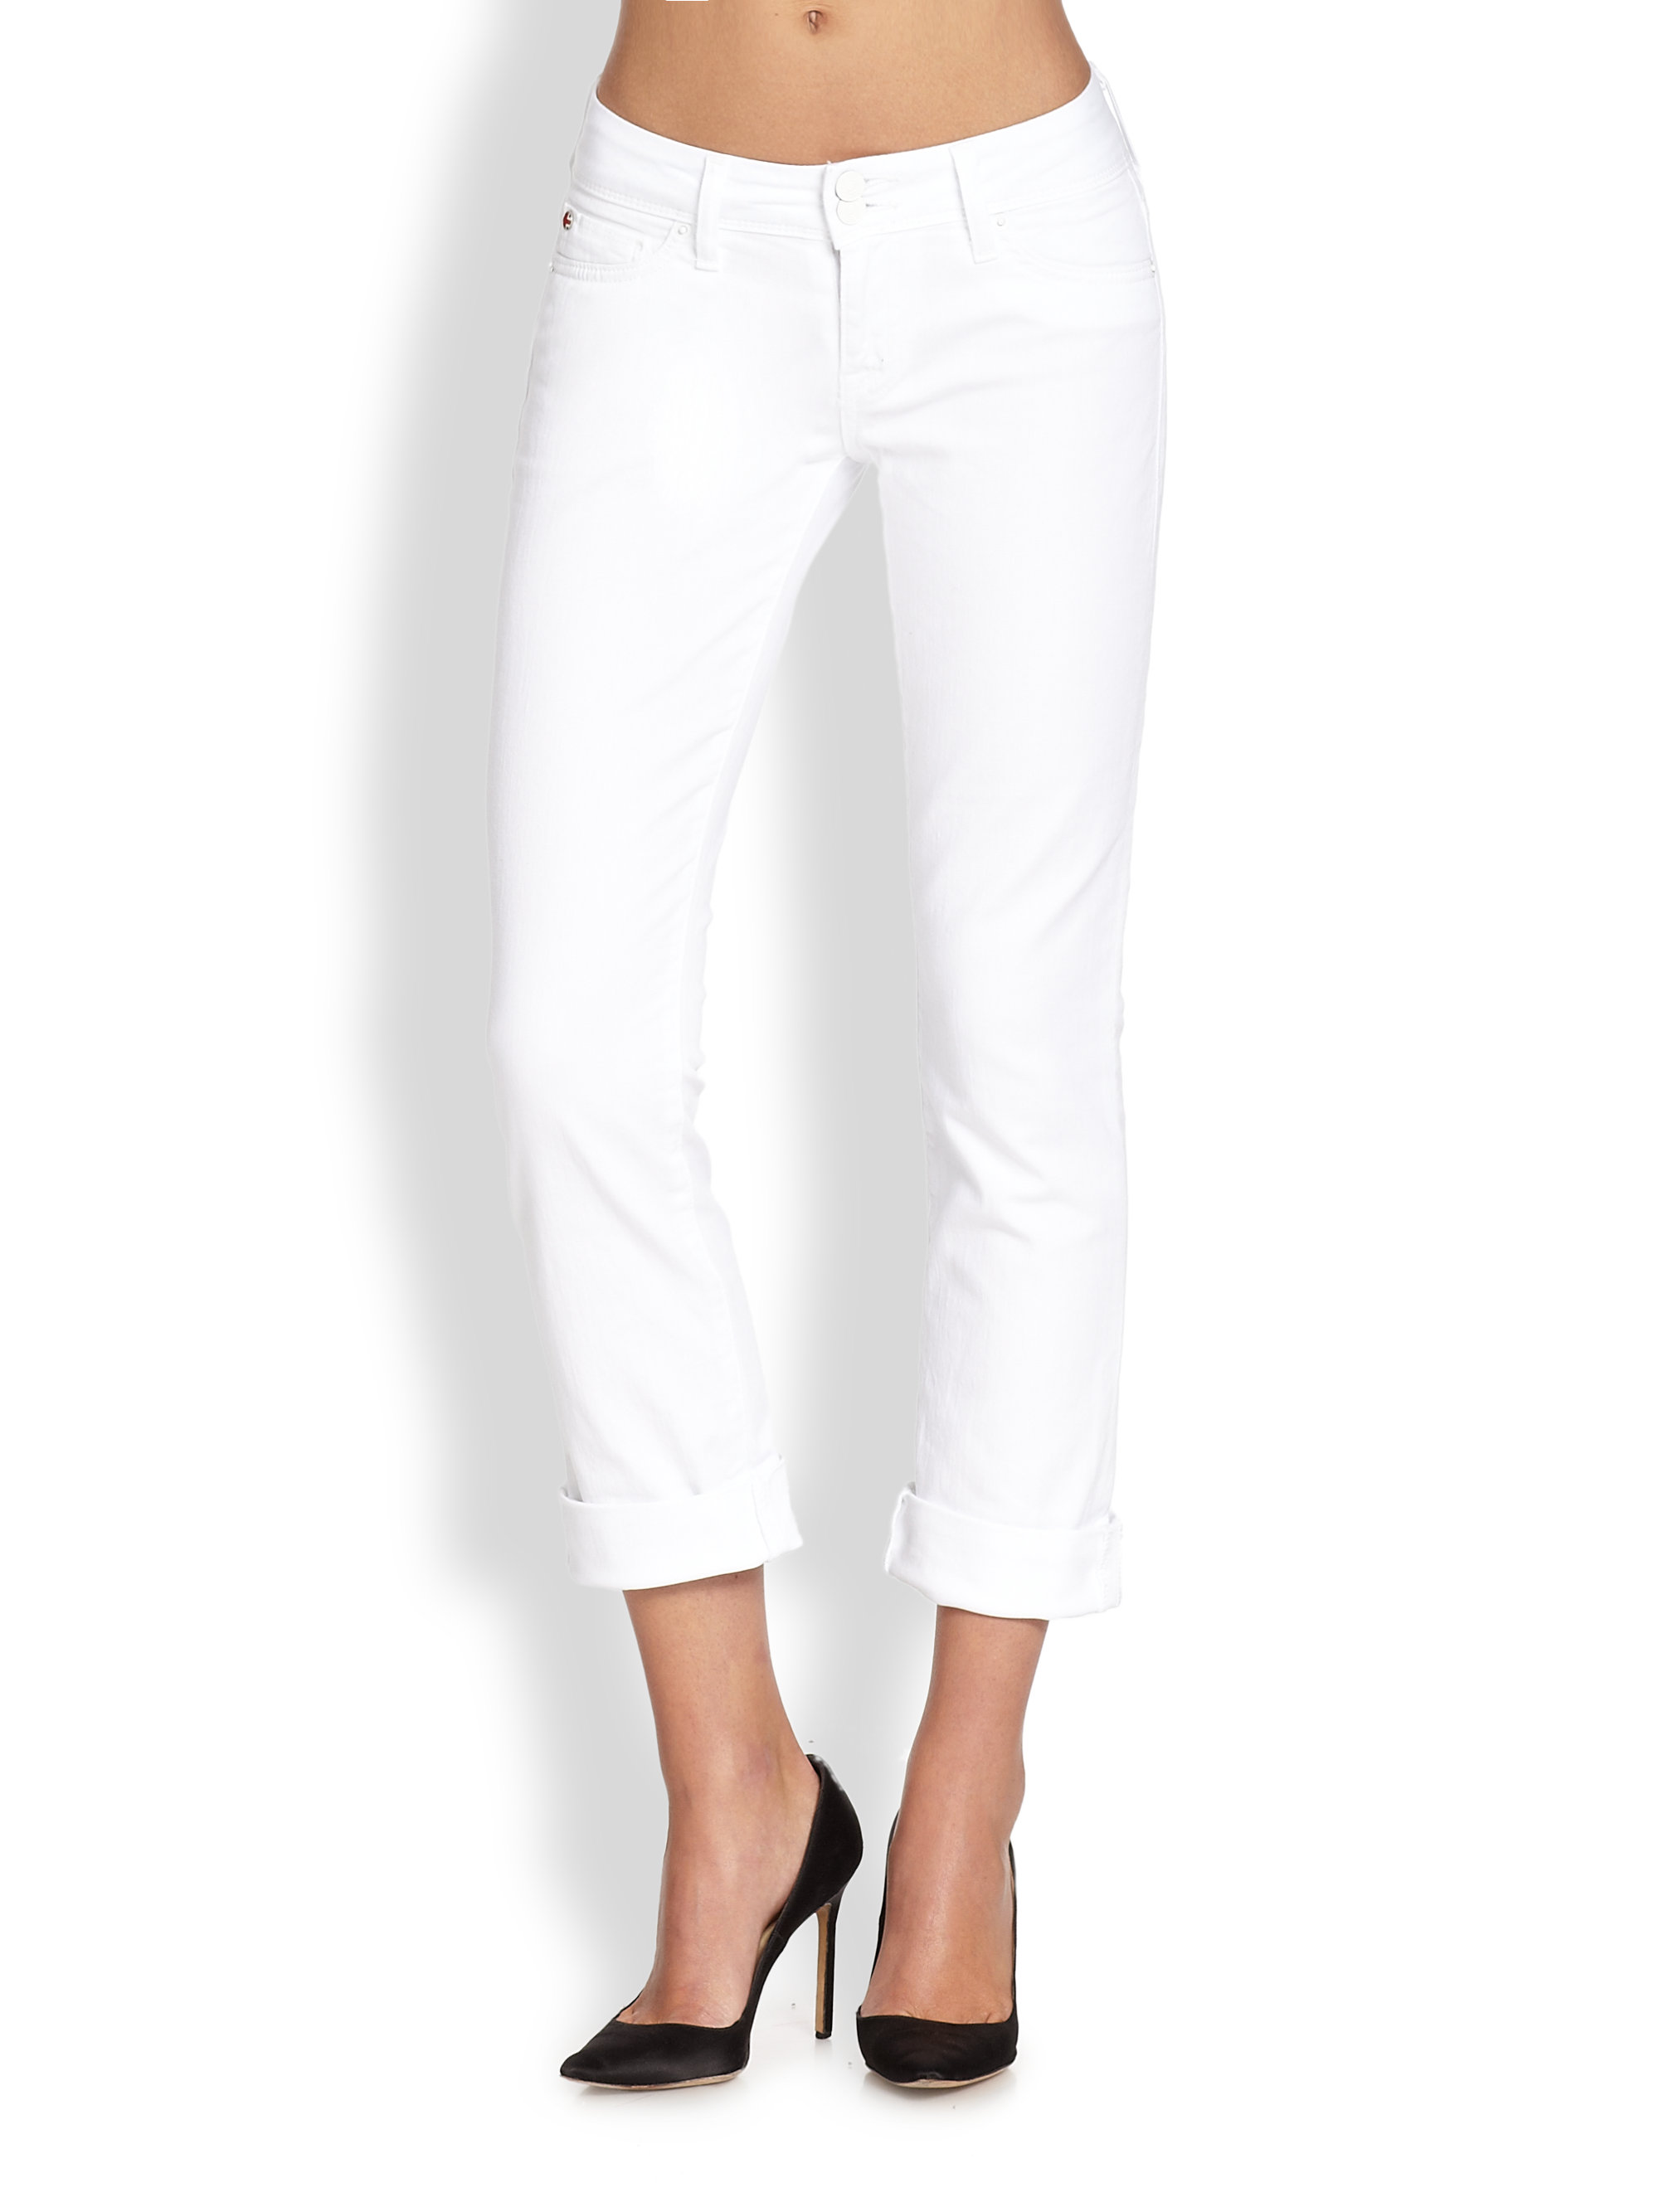 14d51942b39 Gallery. Previously sold at: Saks Fifth Avenue · Women's White Jeans